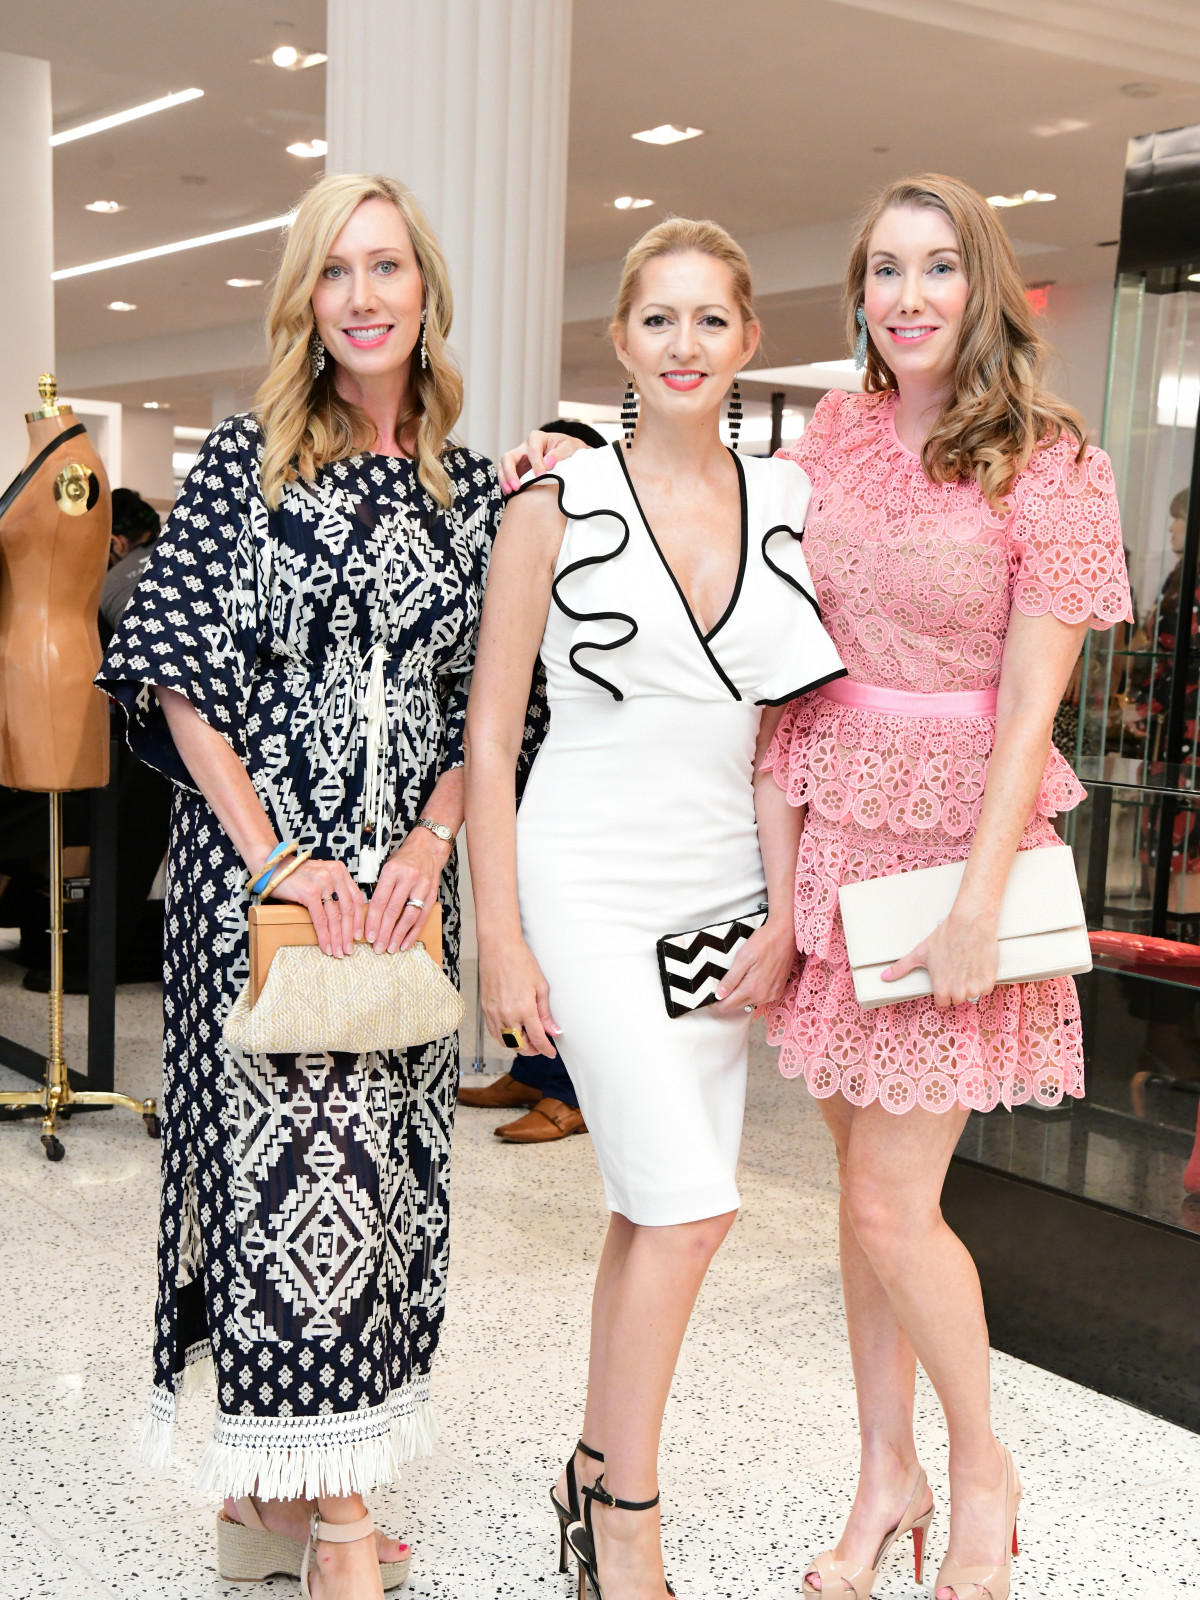 Summer Soiree Dress for Success WOW Tootsies Dianna McMinn, Stefanie Cox, Tiffany Hawthorne